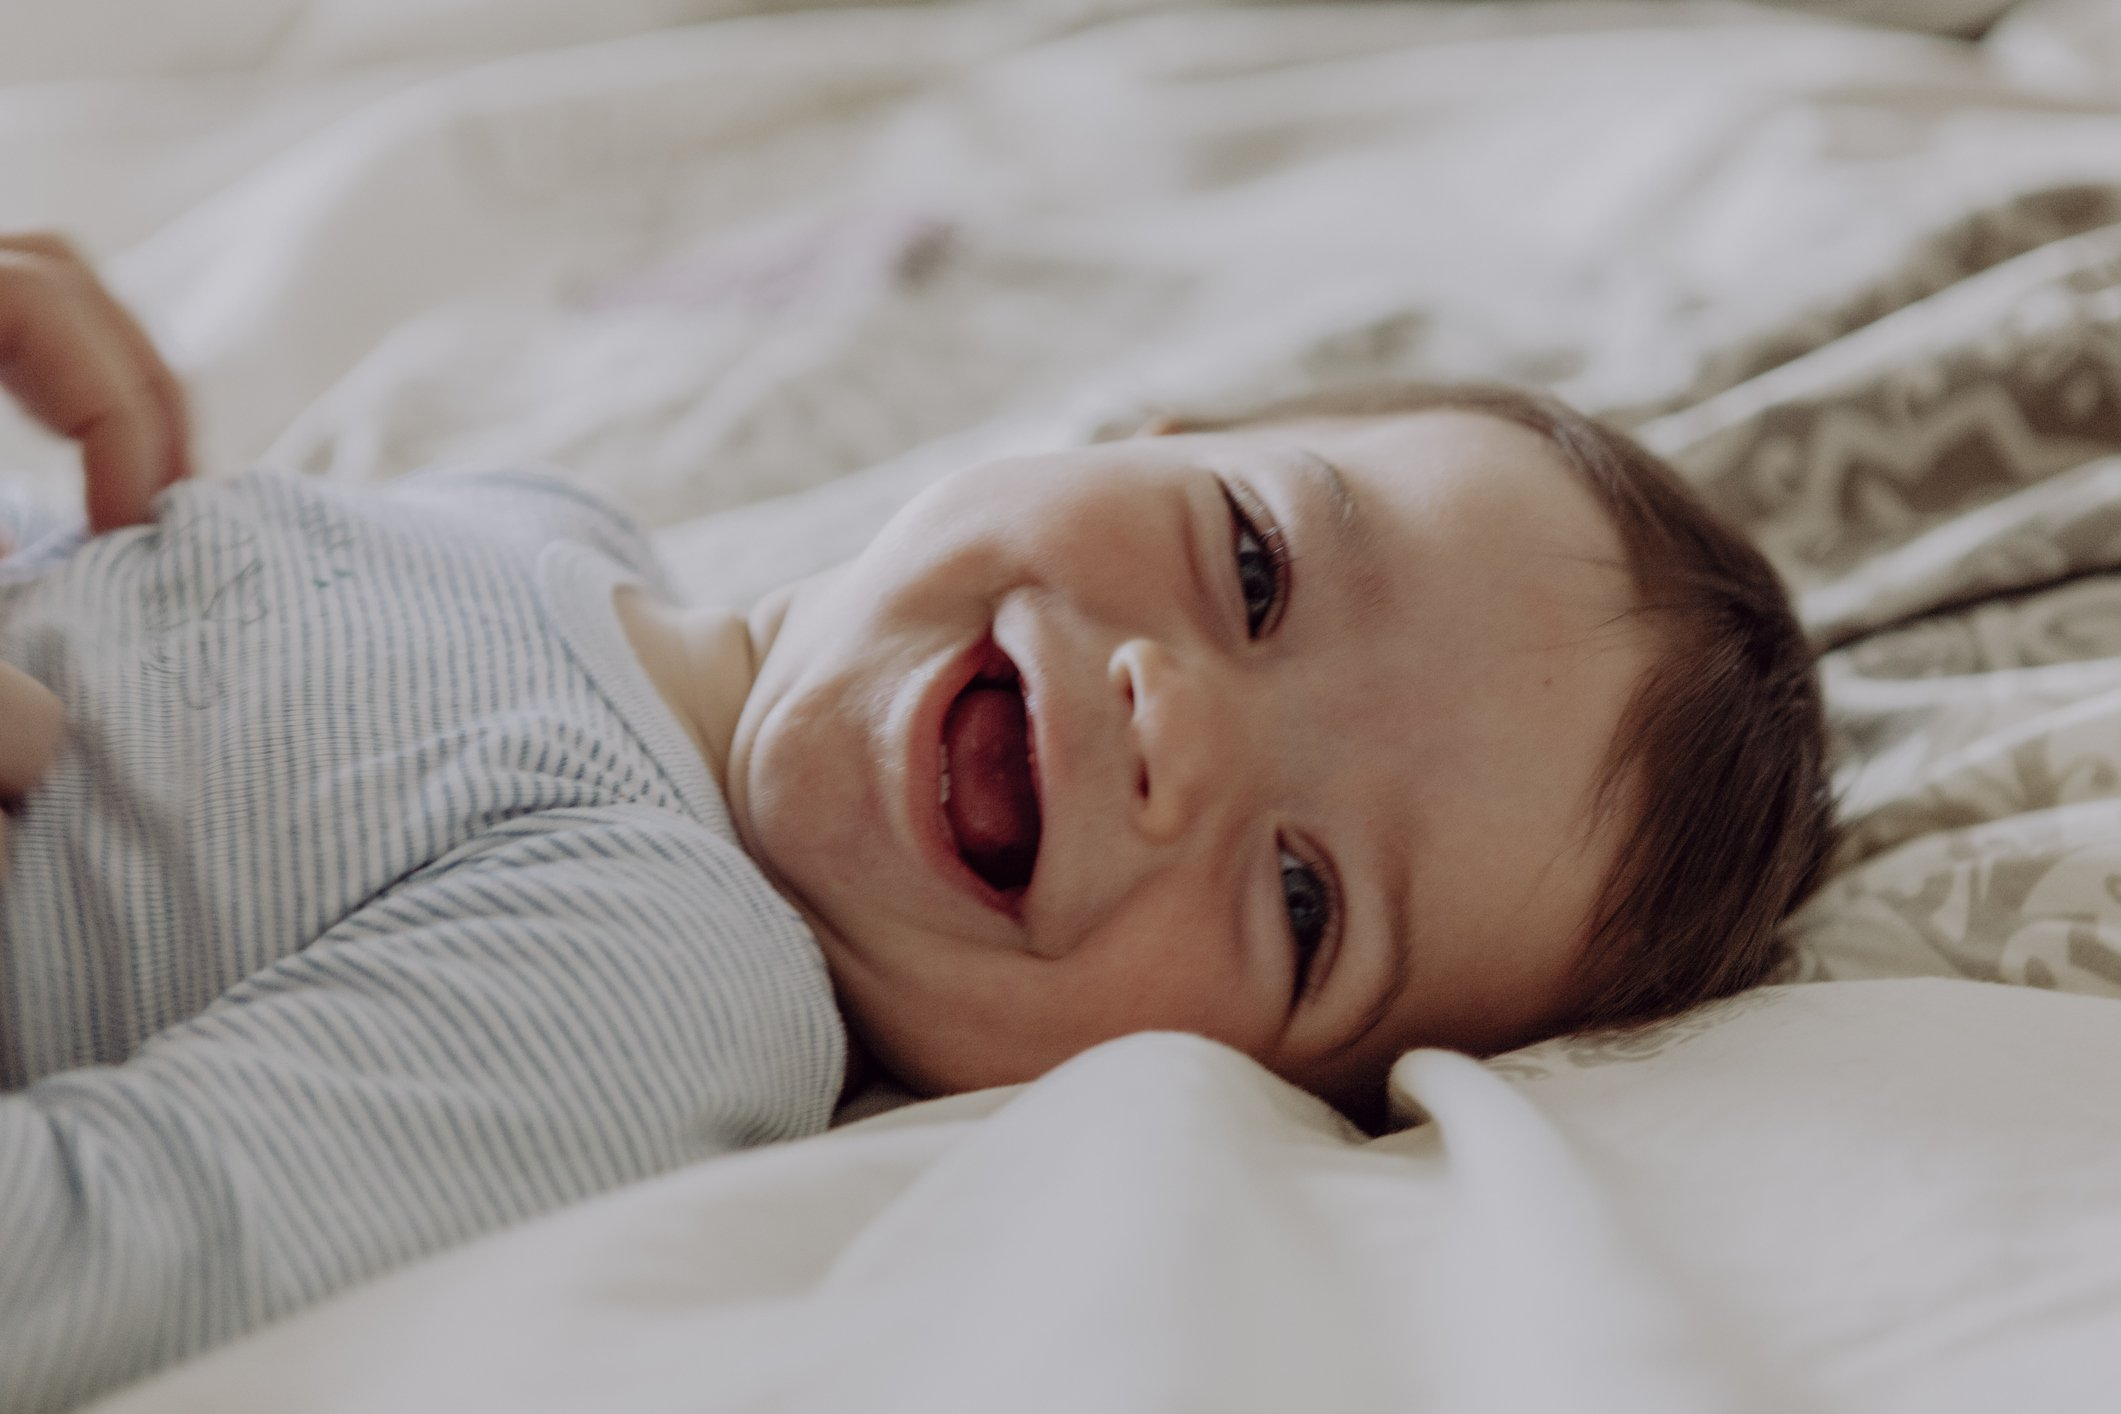 A portrait picture of a baby happily laughing lying on the bed. | Photo: Getty Images